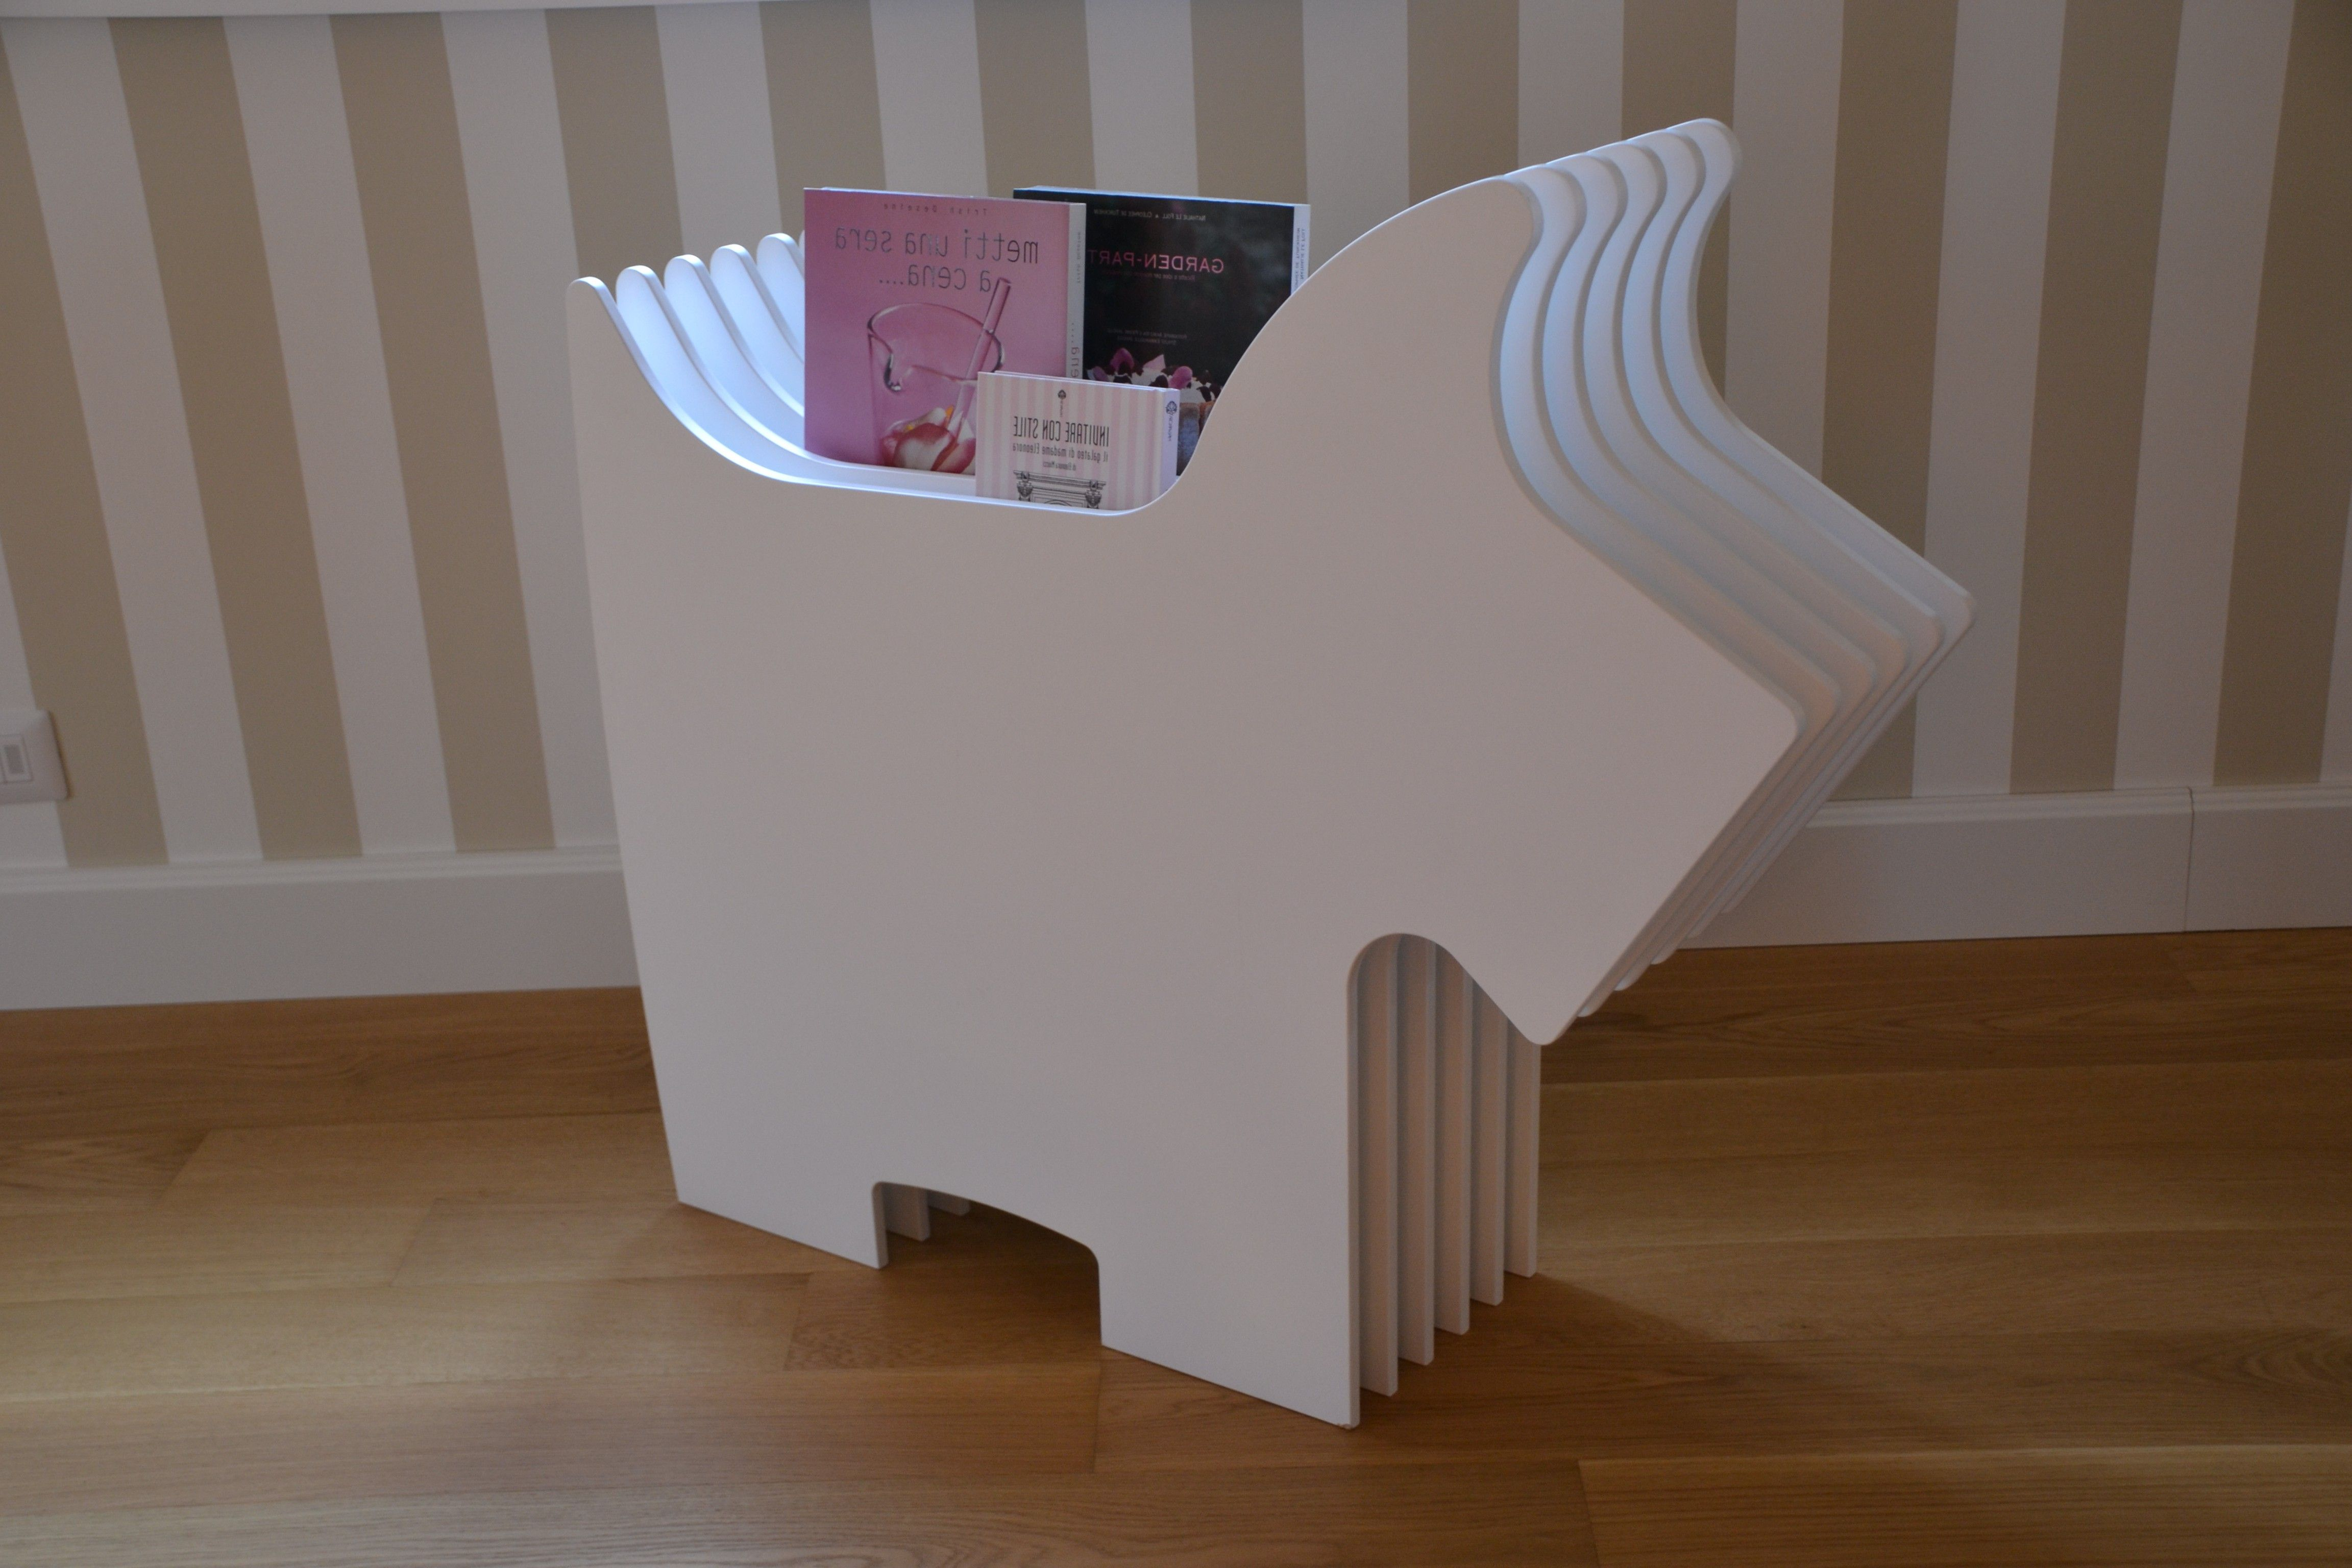 #Charlie #CharlieeLolaProject #magazinerack #coffeetable #chair #bedsidetable #mdf #handmade #madeinitaly #madewithlove